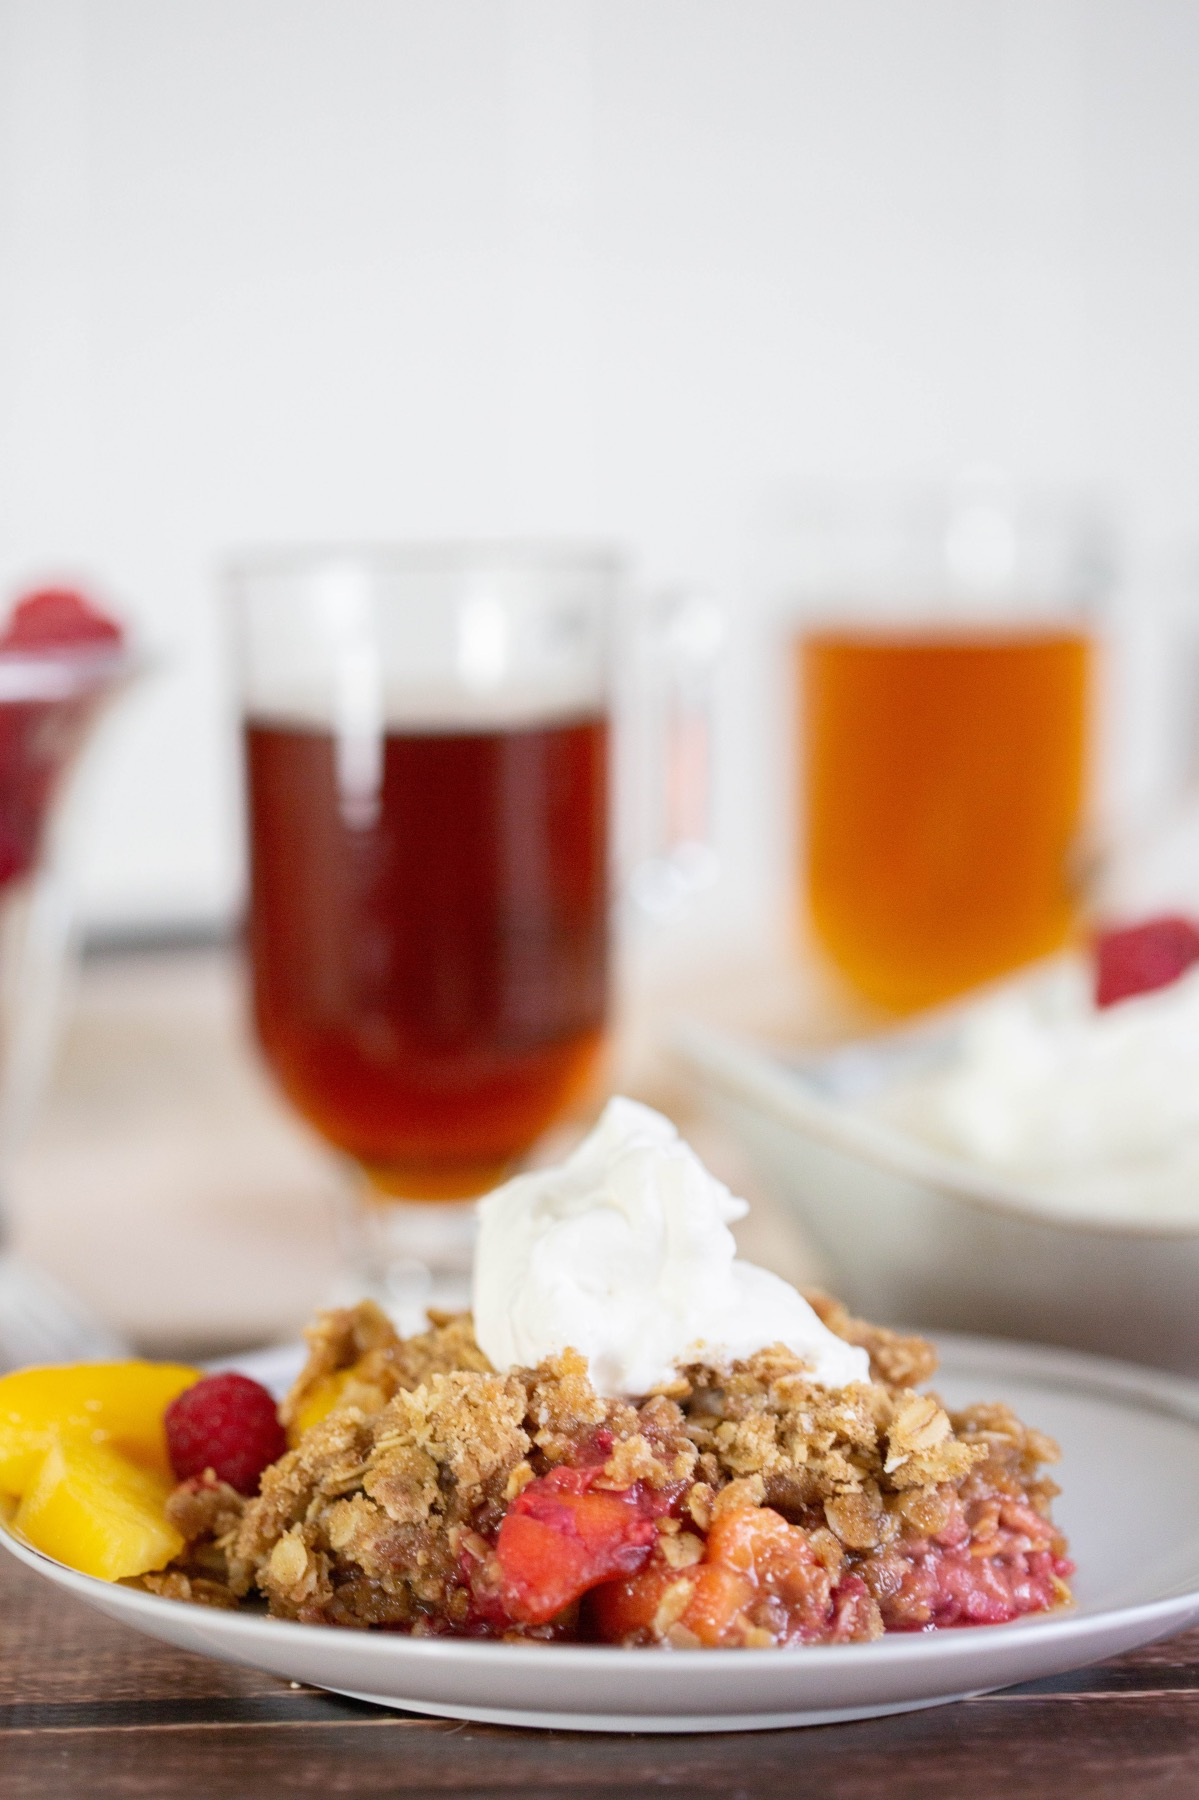 raspberry and peach crumble recipe served